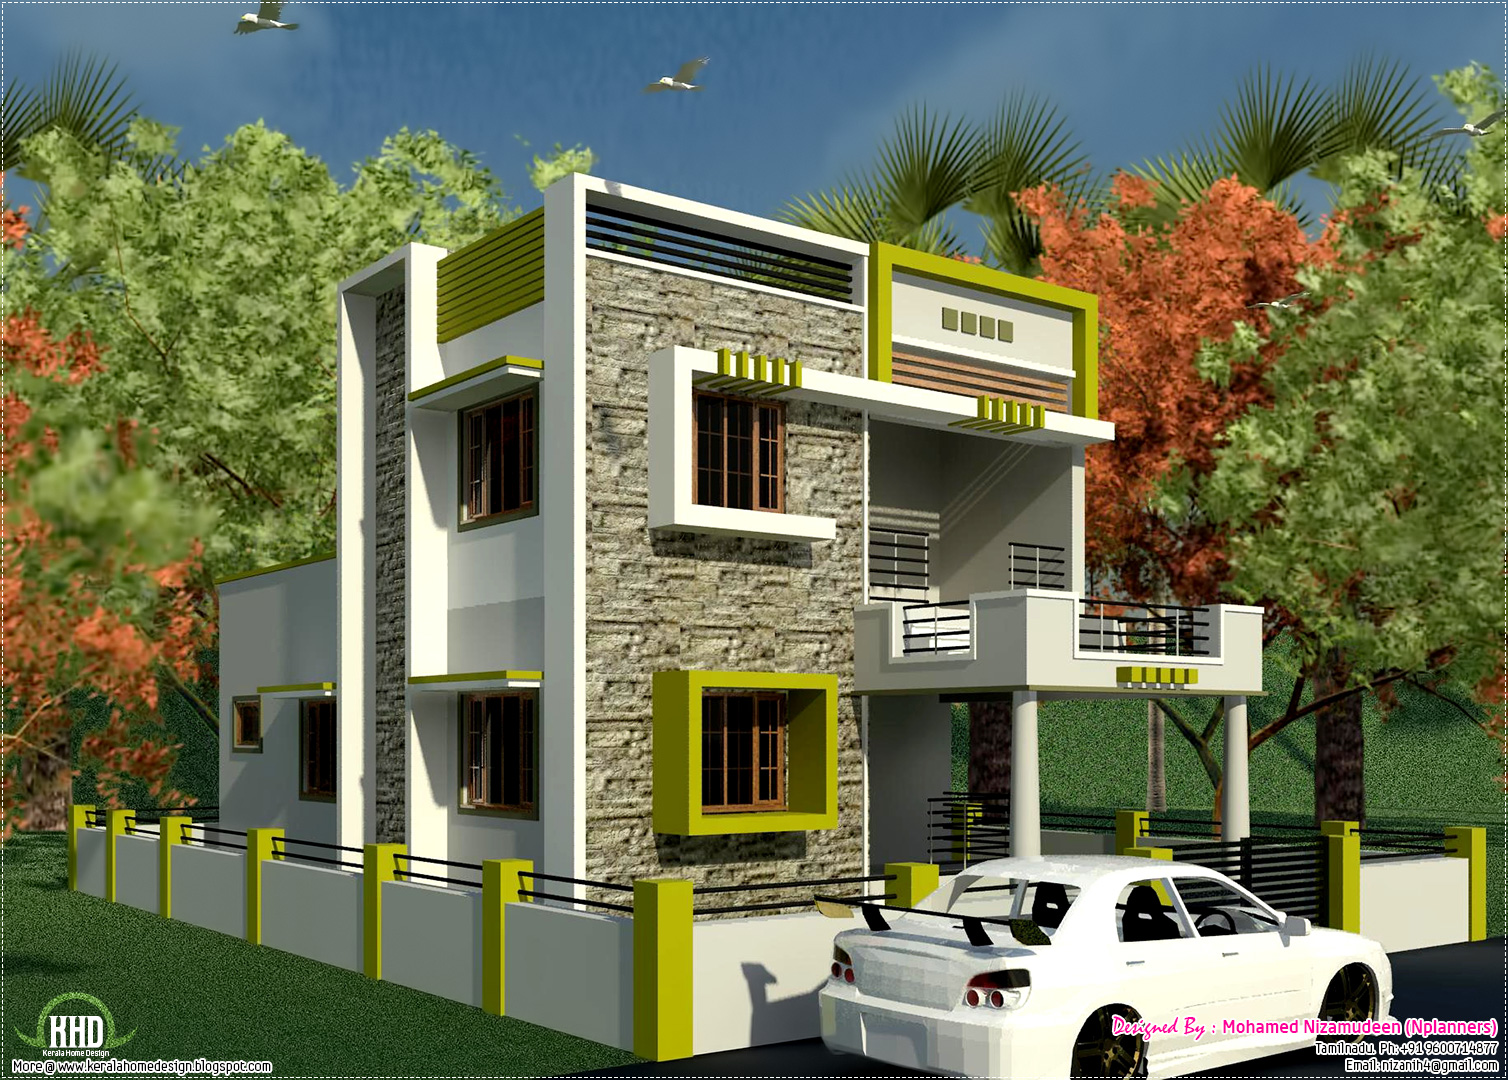 South indian style new modern 1460 sq feet house design for Indian house model